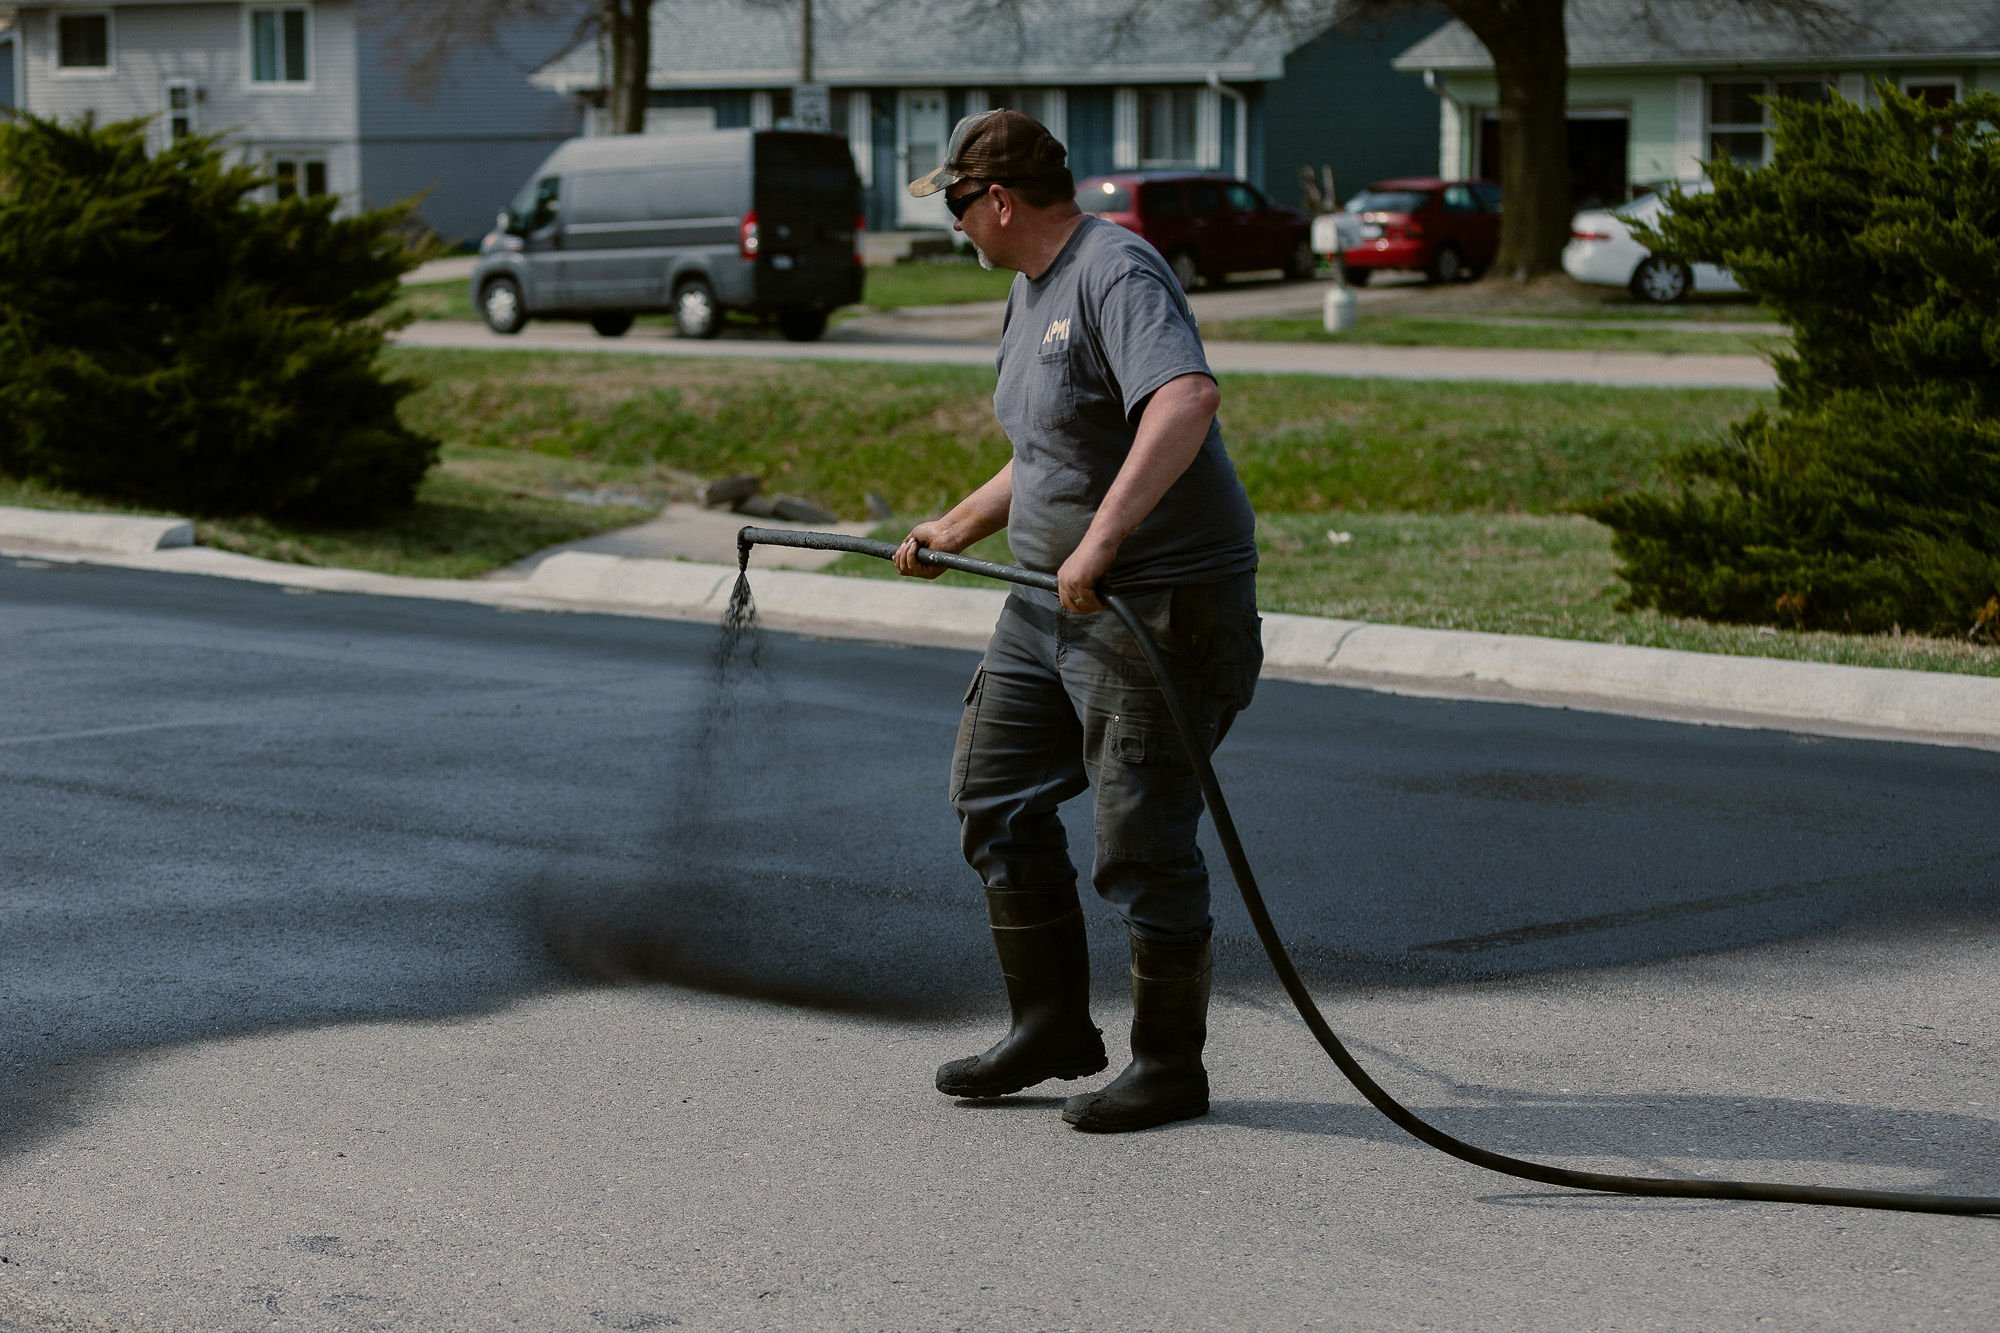 Lincoln Paving and Asphalt Repair apms 1191 - America's Pavement Maintenance Specialist | Lincoln, Nebraska